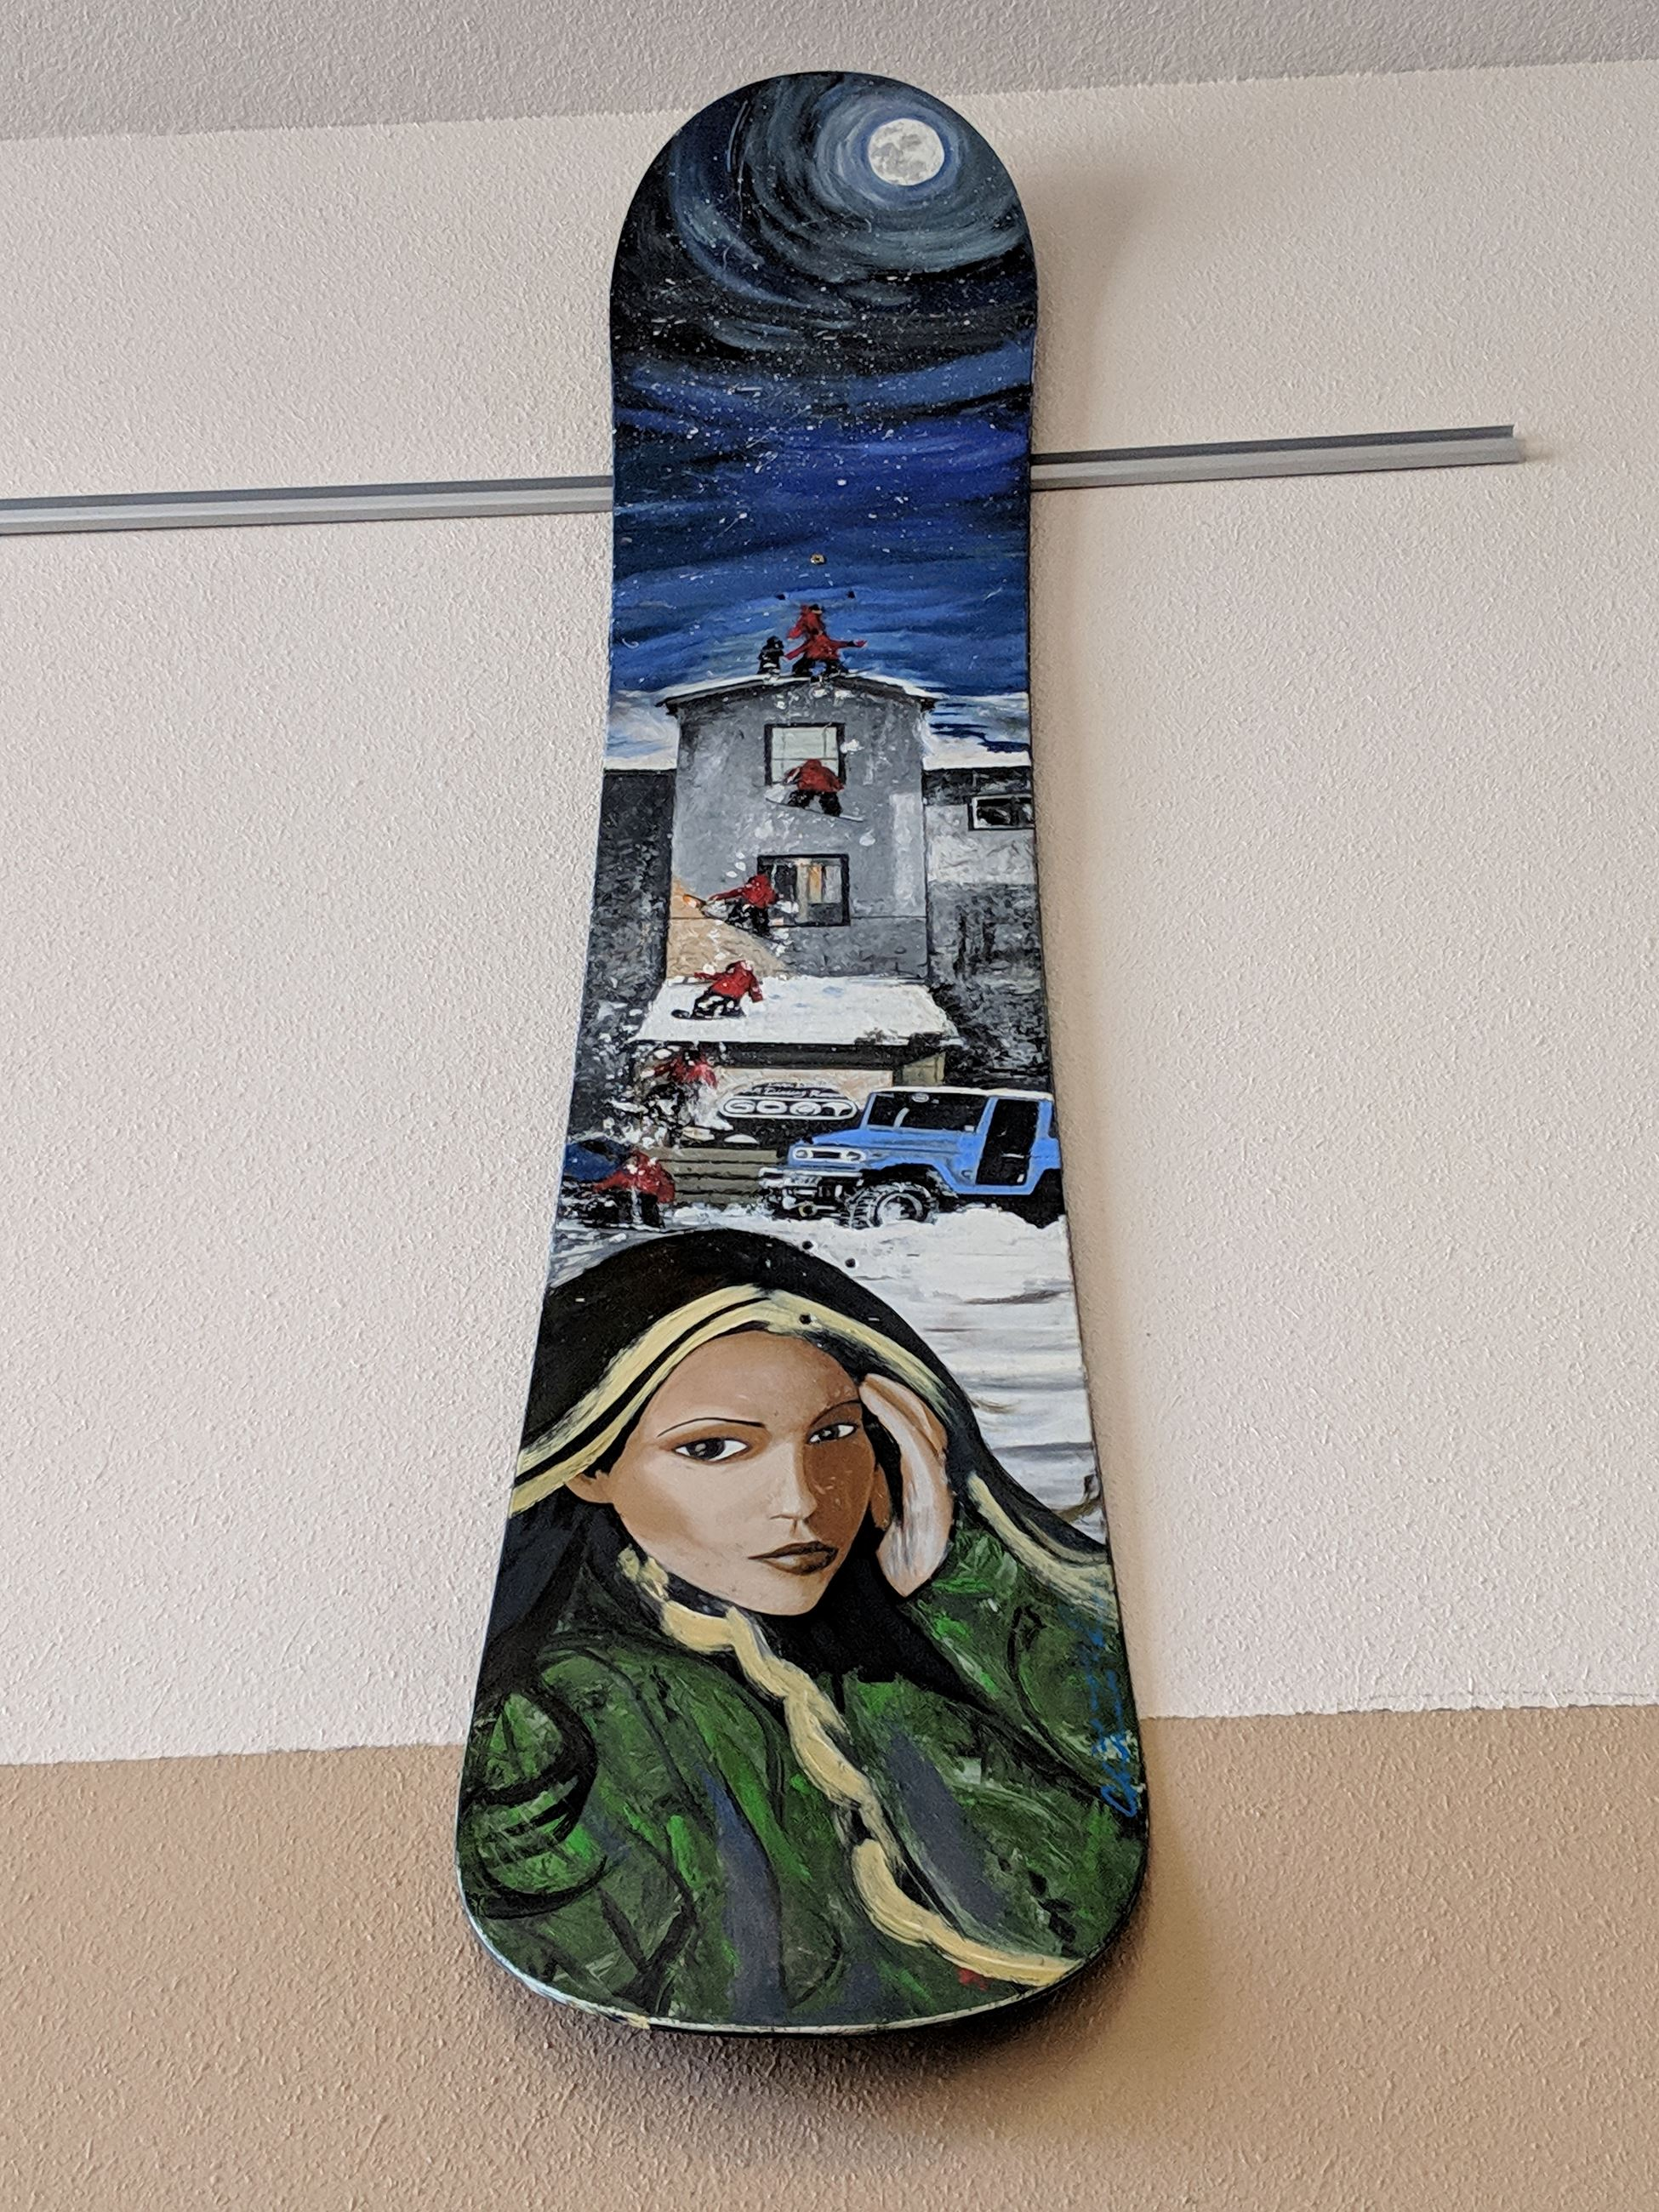 Photo of snowboard painted with images of snowboarder, house and woman